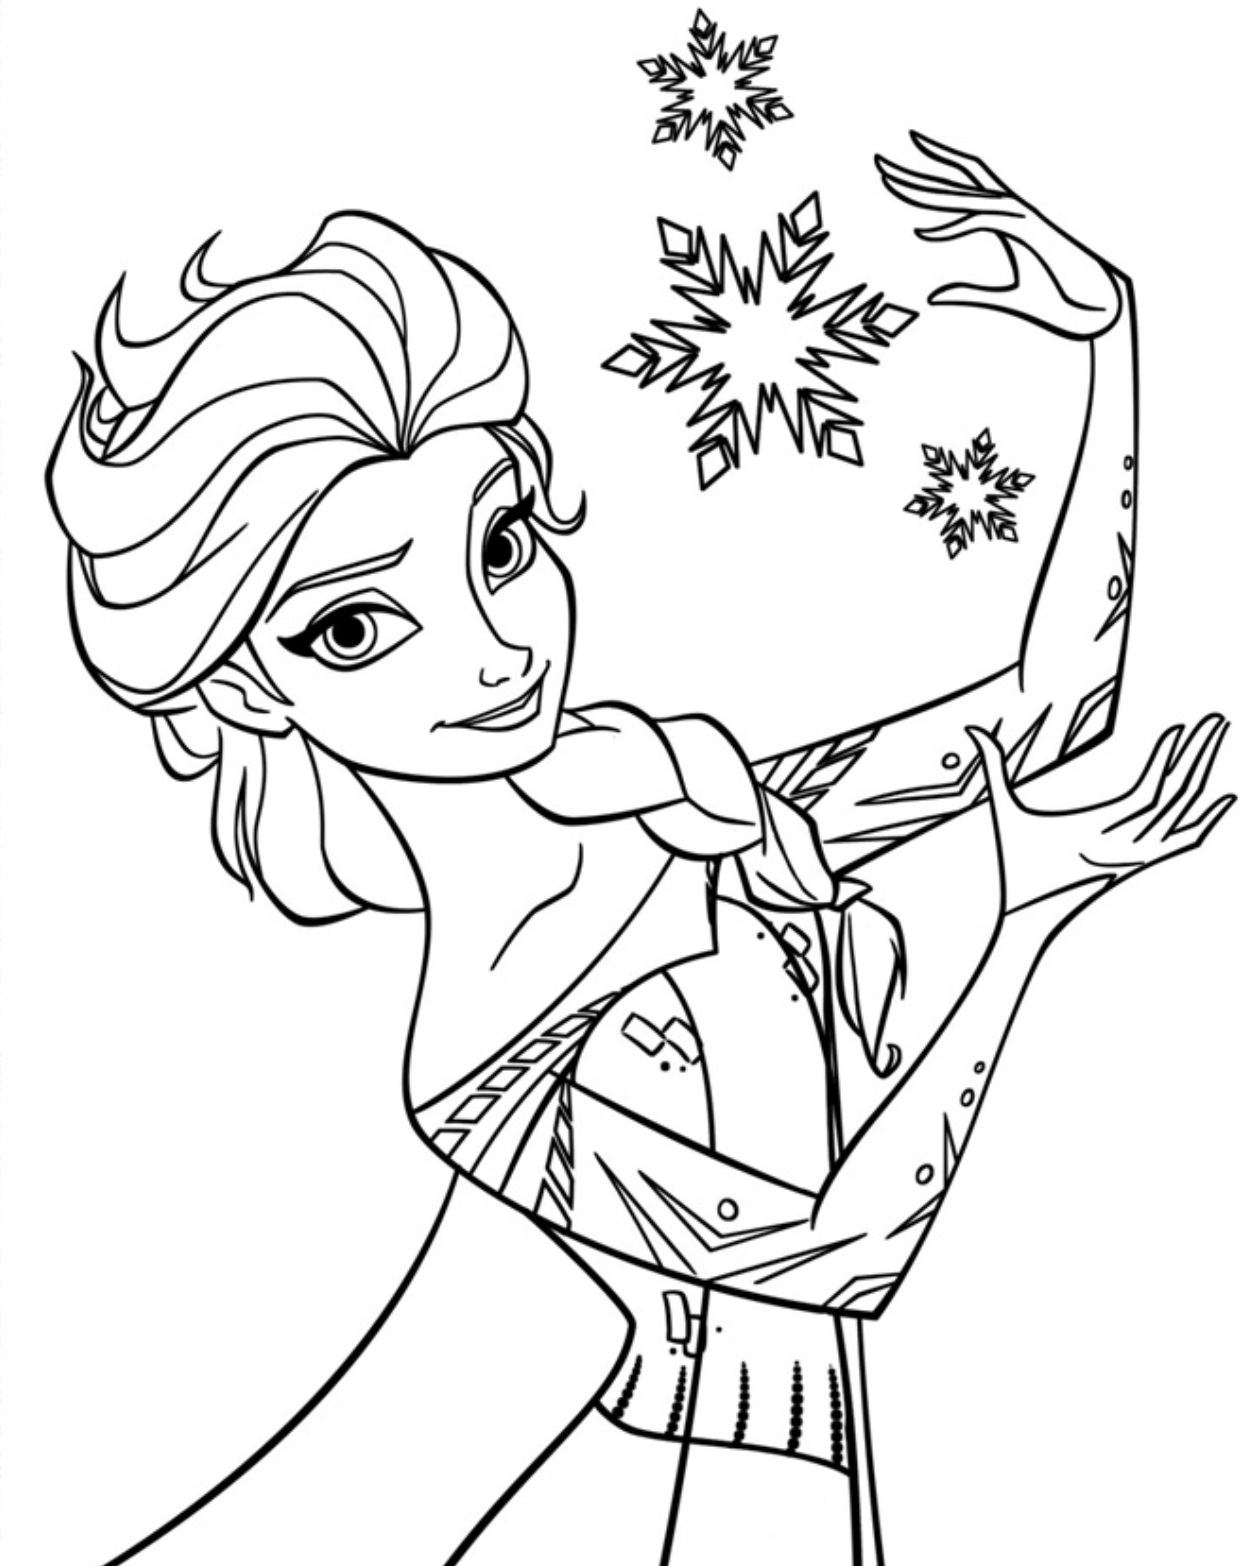 Frozen_Coloring_Pages_10